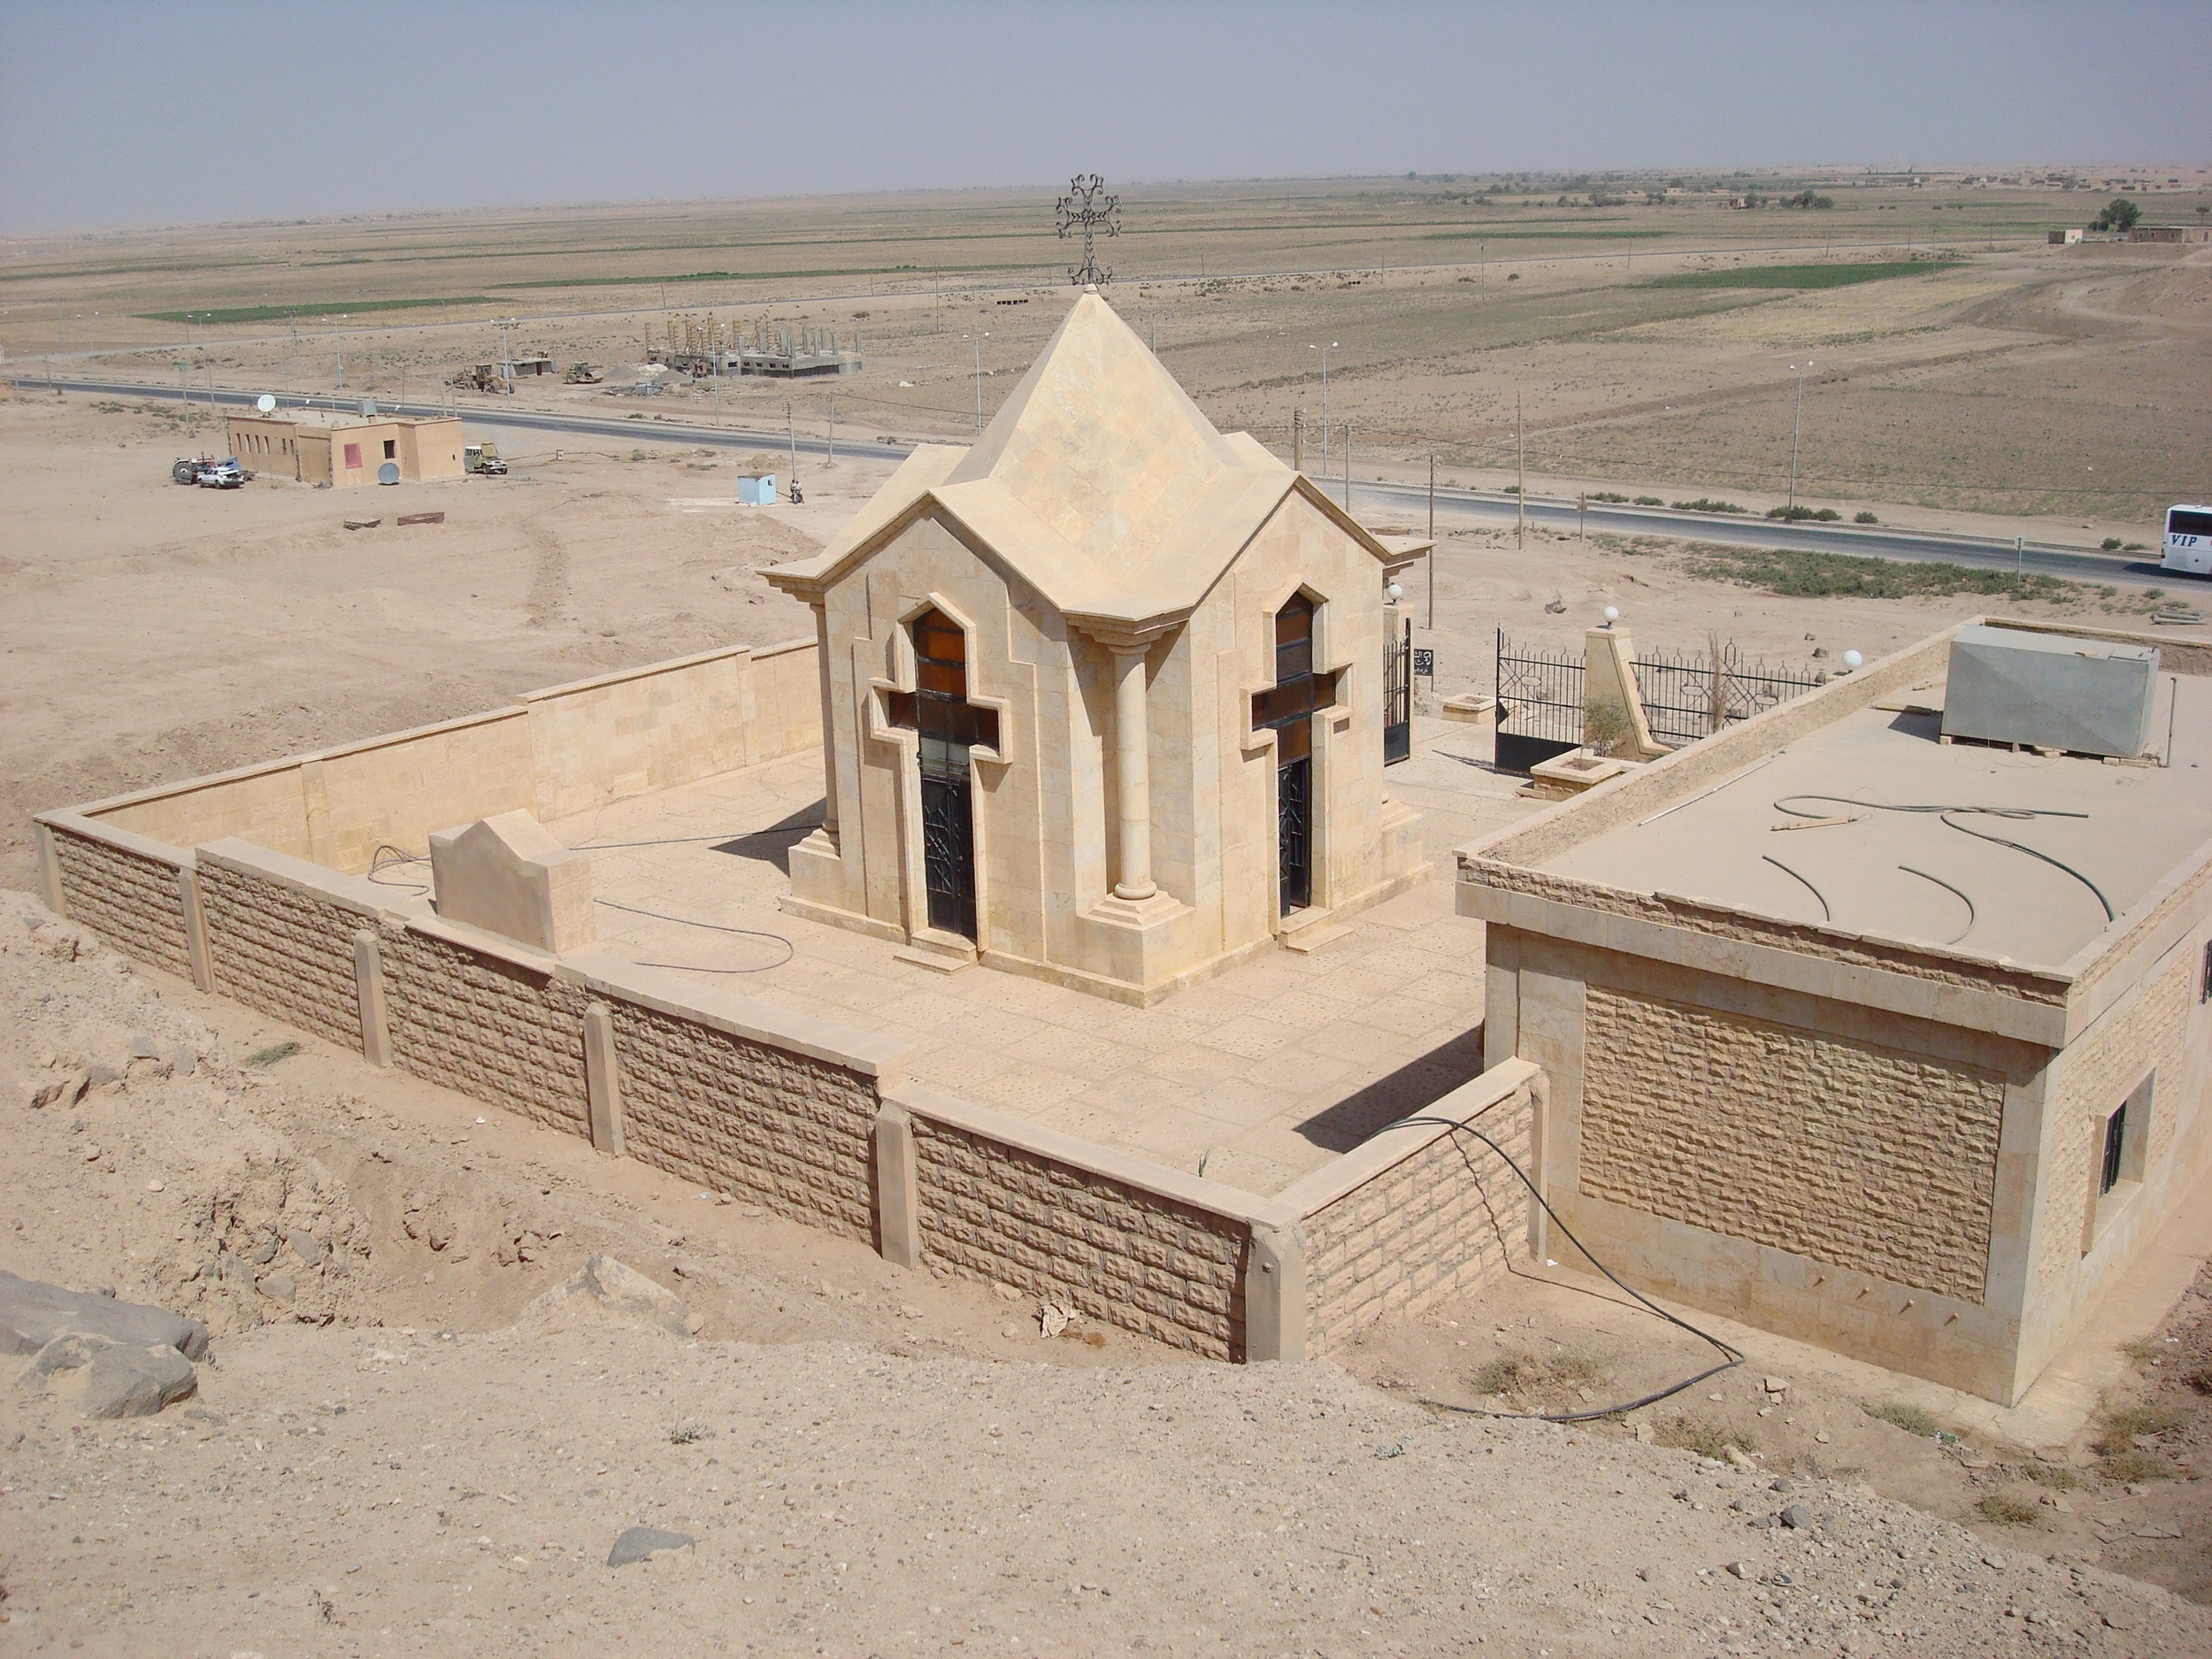 Deir Zor: The chapel built by the site of a mass grave discovered during the construction of the highway